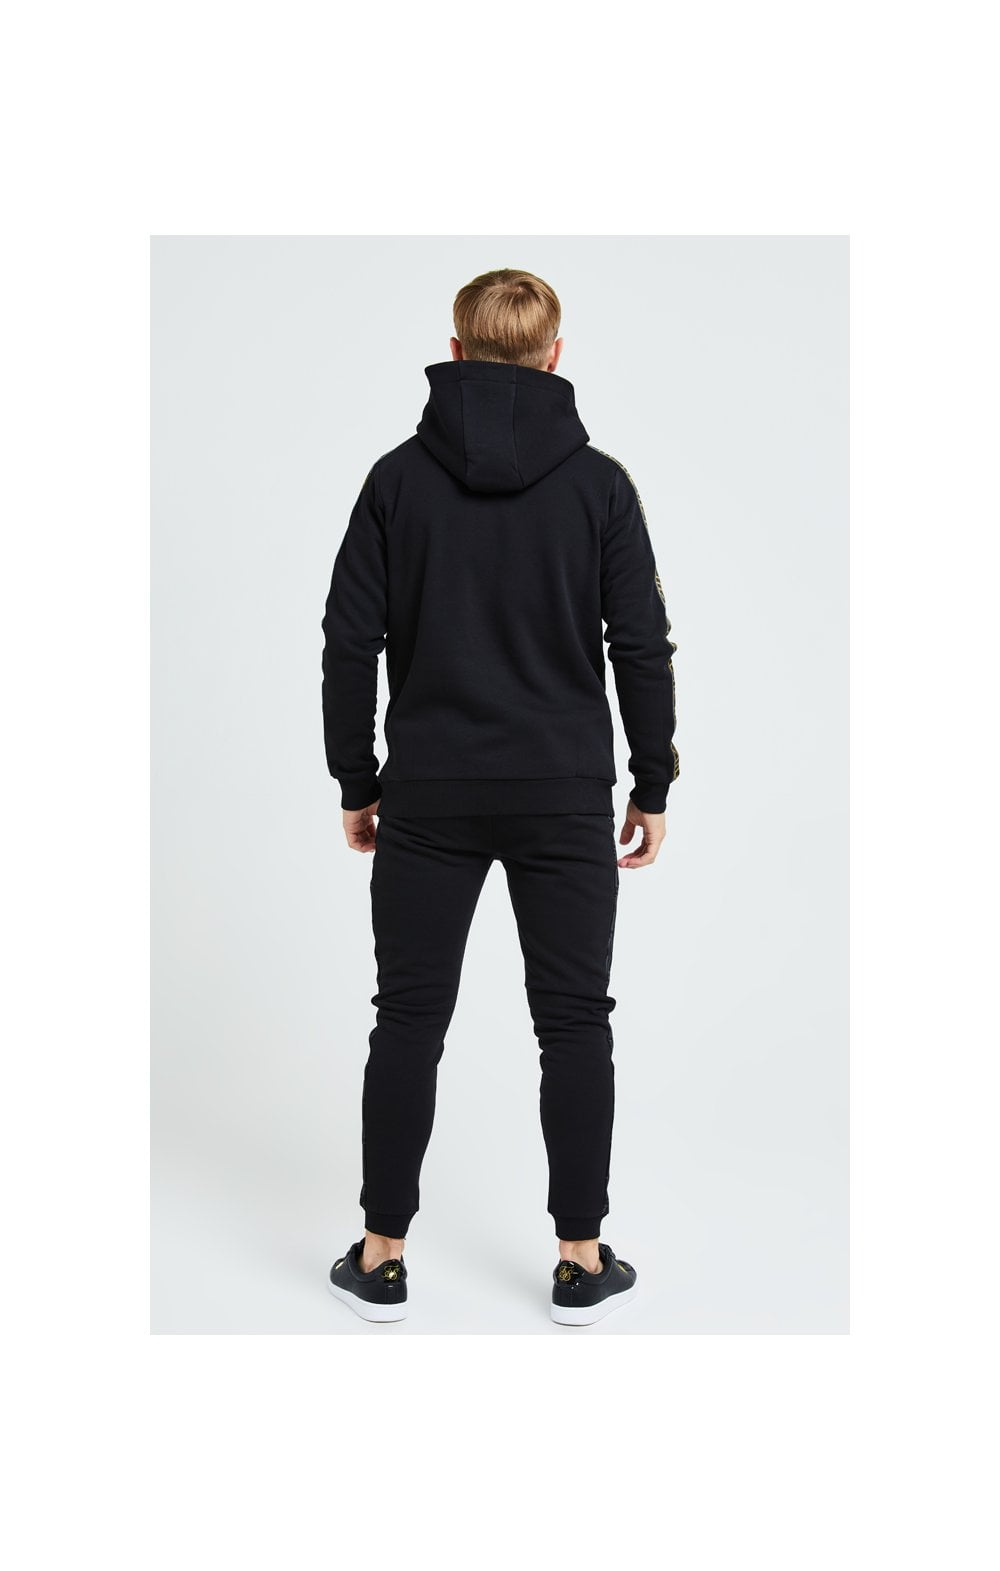 Illusive London Elite Overhead Hoodie - Black (5)